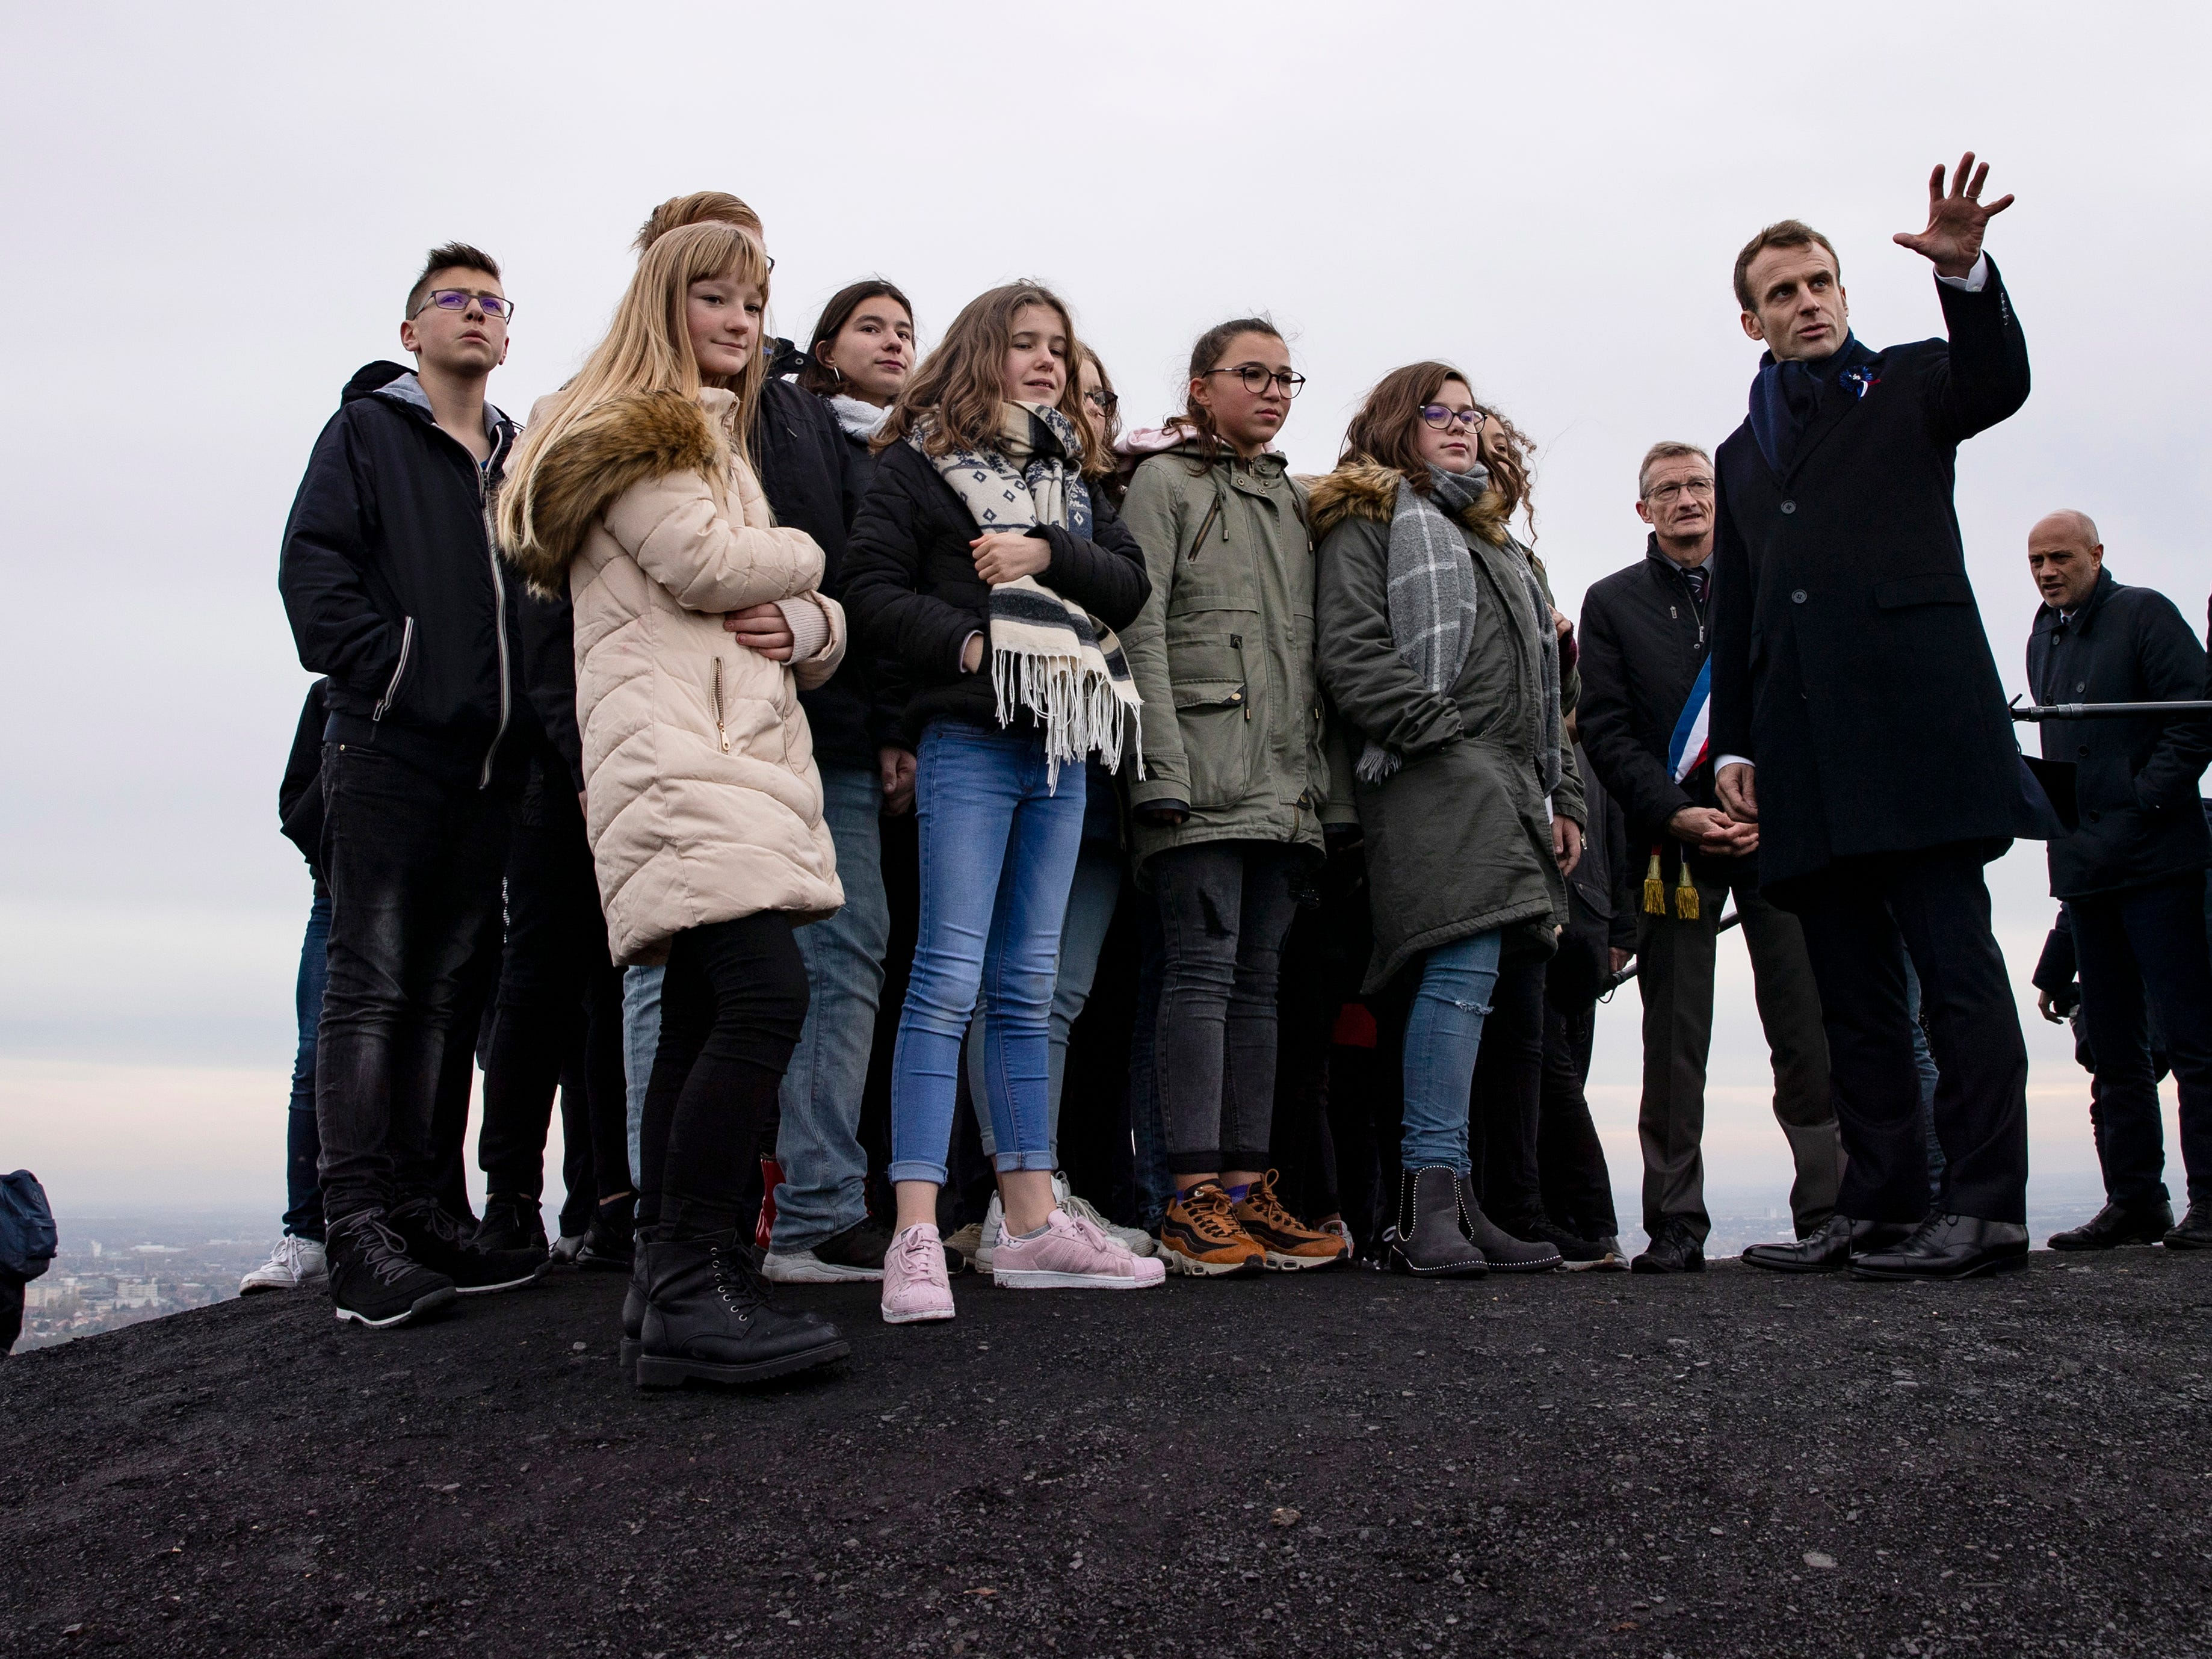 epa07153055 French President Emmanuel Macron (R) visits with young people and officials the slag heaps aka 'terrils' in Loos en Gohelle, near Lens, France, 09 November 2018. Macron is currently on a six-day tour to visit the most iconic landmarks of the First World War ahead of the commemorations of the 100th anniversary of the 11 November 1918 armistice. Lens an important industrial center with coal mining begining at 1849 with the last coal mine in Lens closed in 1986. The Canadian National Vimy Memorial dedicated to the Battle of Vimy Ridge in WWI is located nine kilometers outside Lens.  EPA-EFE/ETIENNE LAURENT / POOL ORG XMIT: ELA69